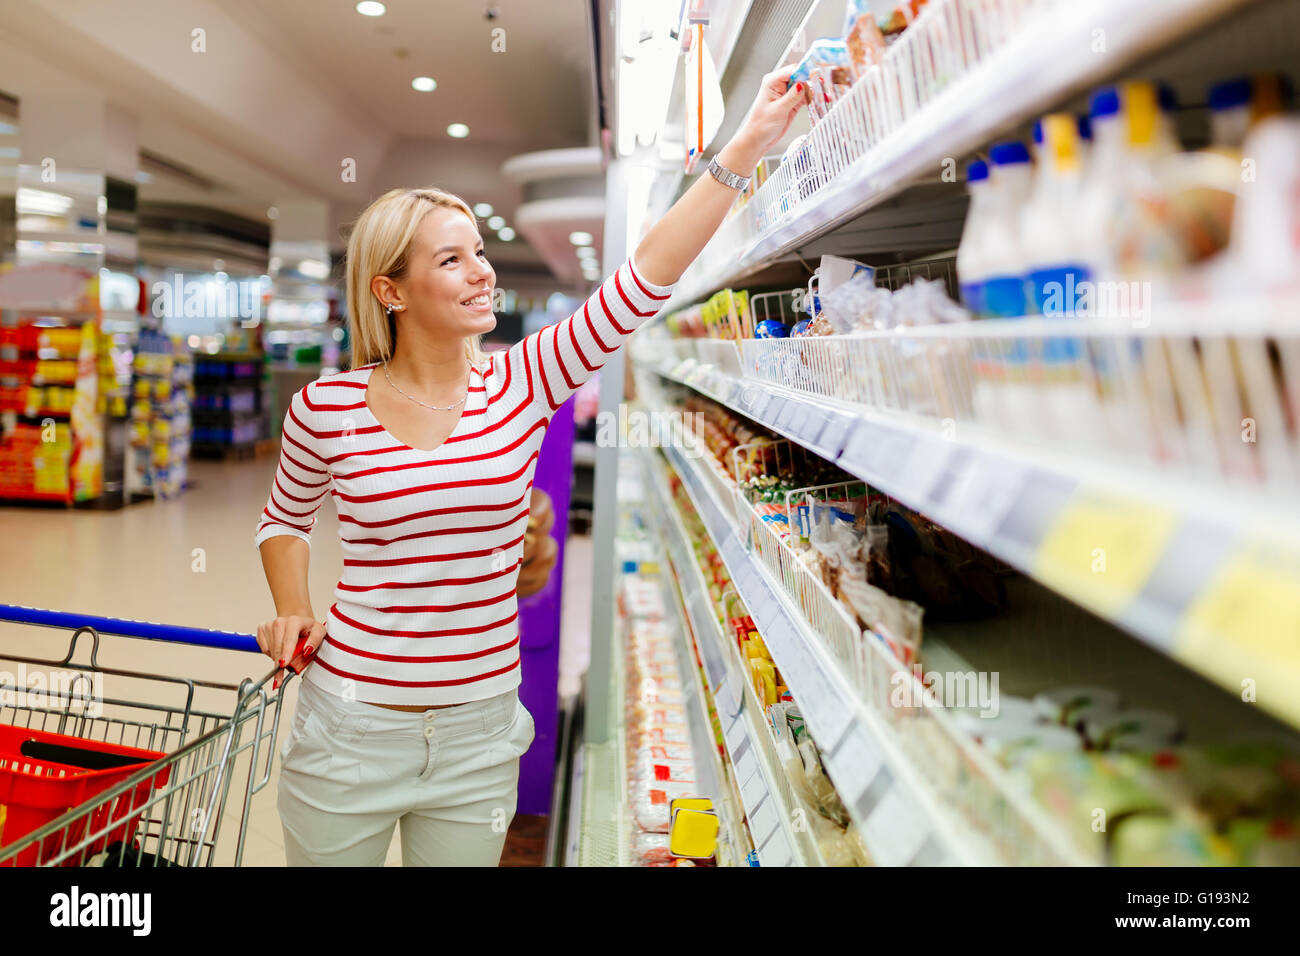 Beautiful woman shopping in supermarket and deciding what to buy - Stock Image